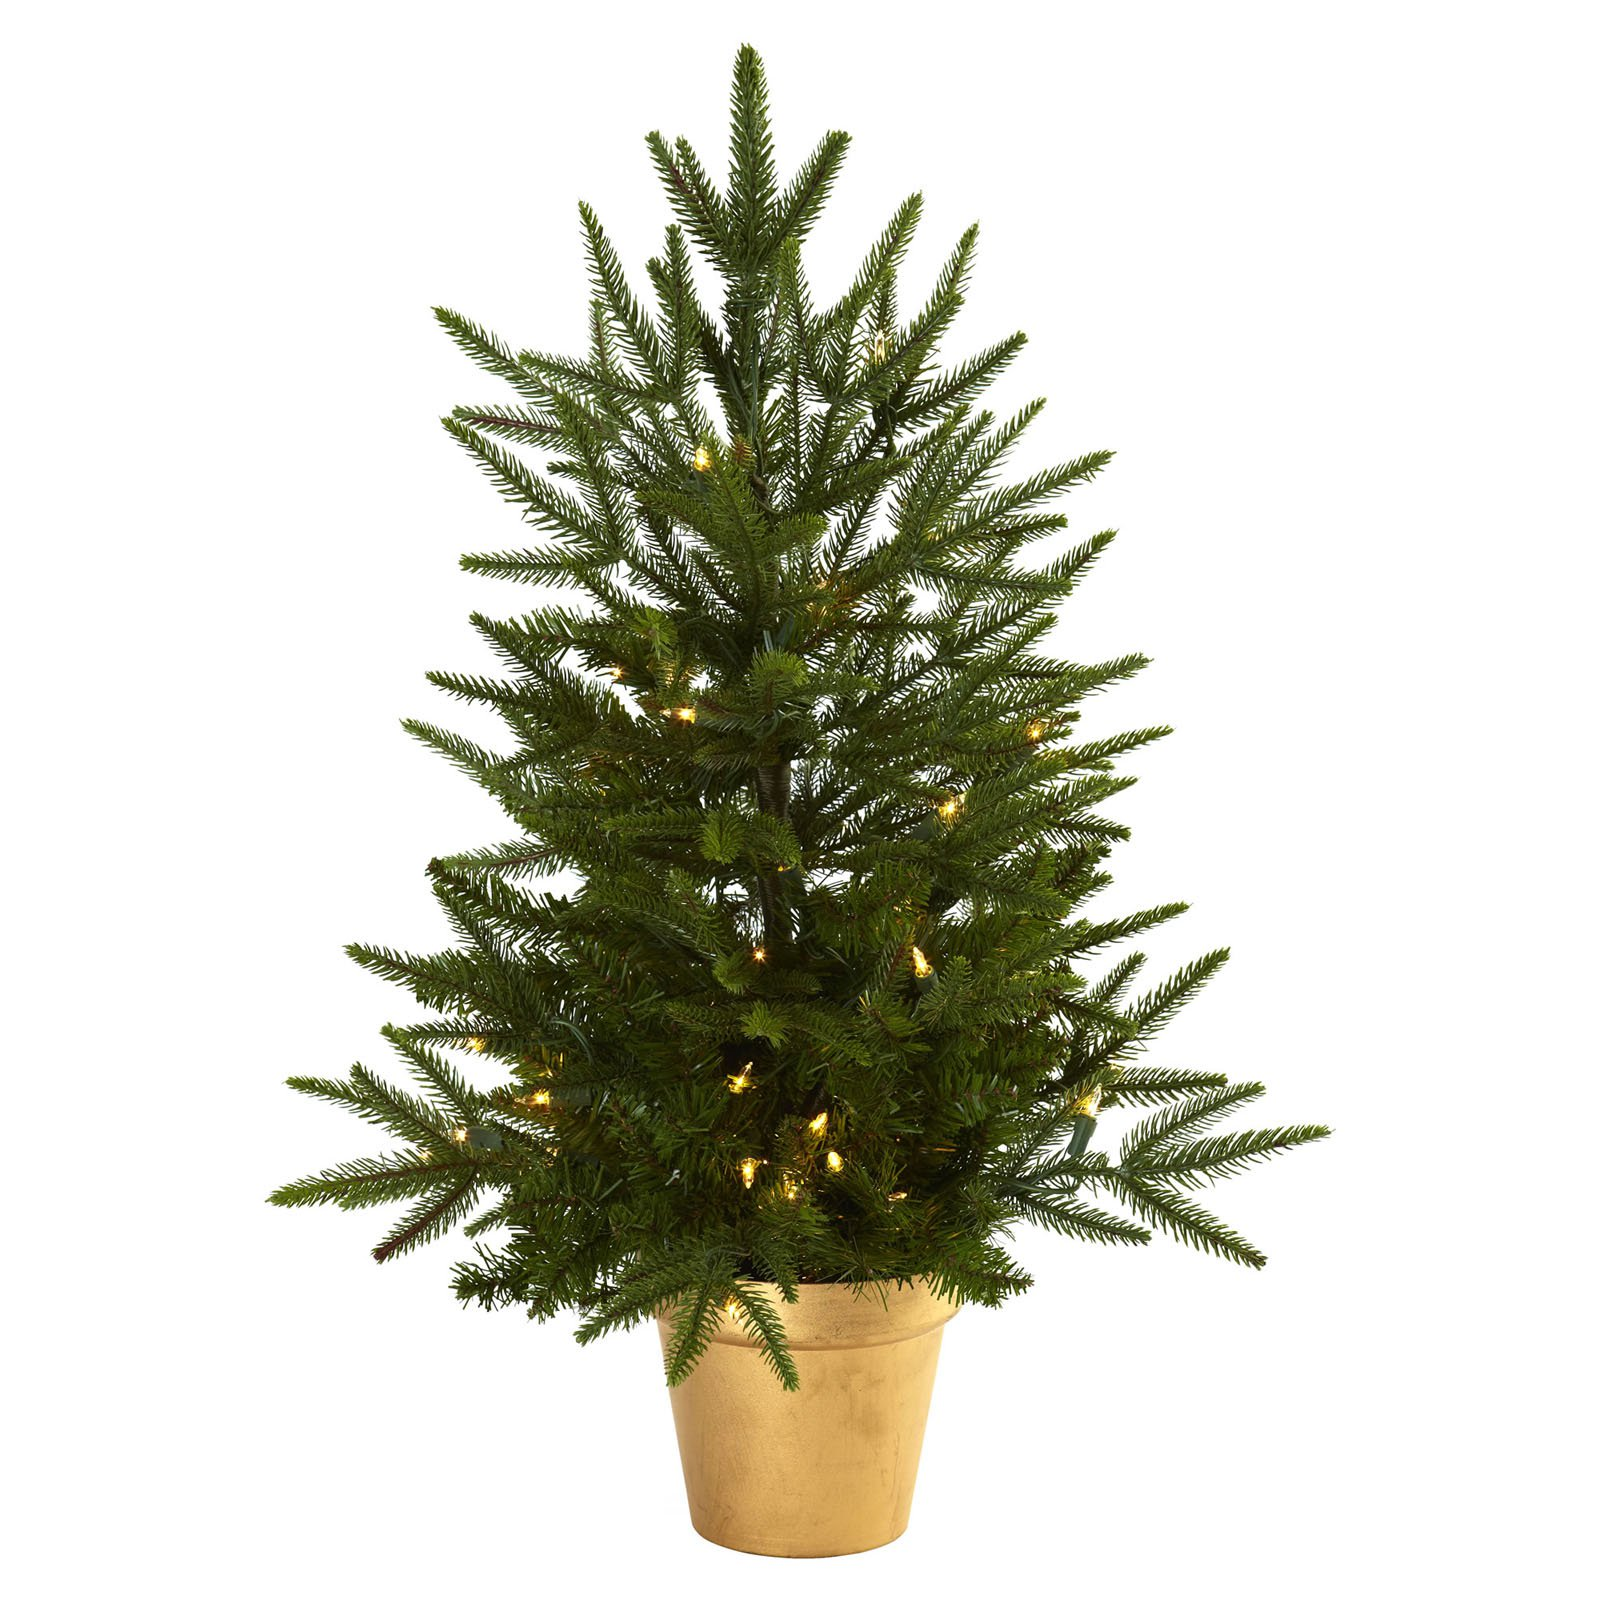 2.5 ft. Christmas Tree with Golden Planter & Clear Lights